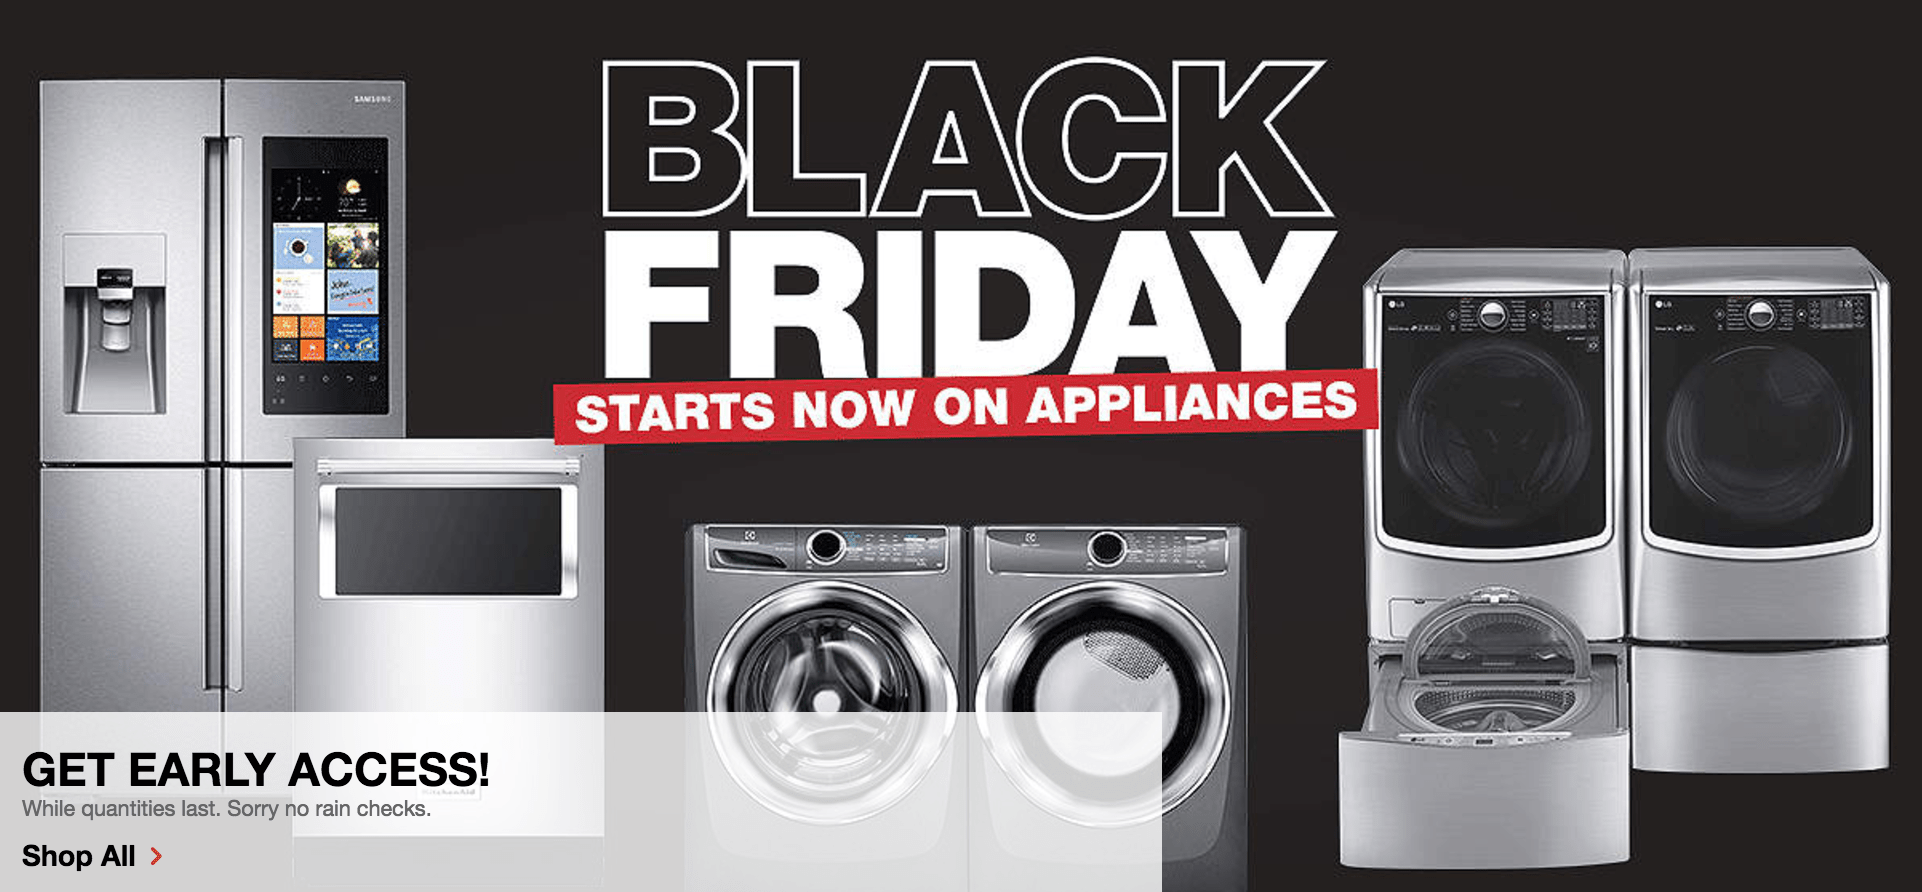 Home Depot Canada Black Friday Early Access Deals!